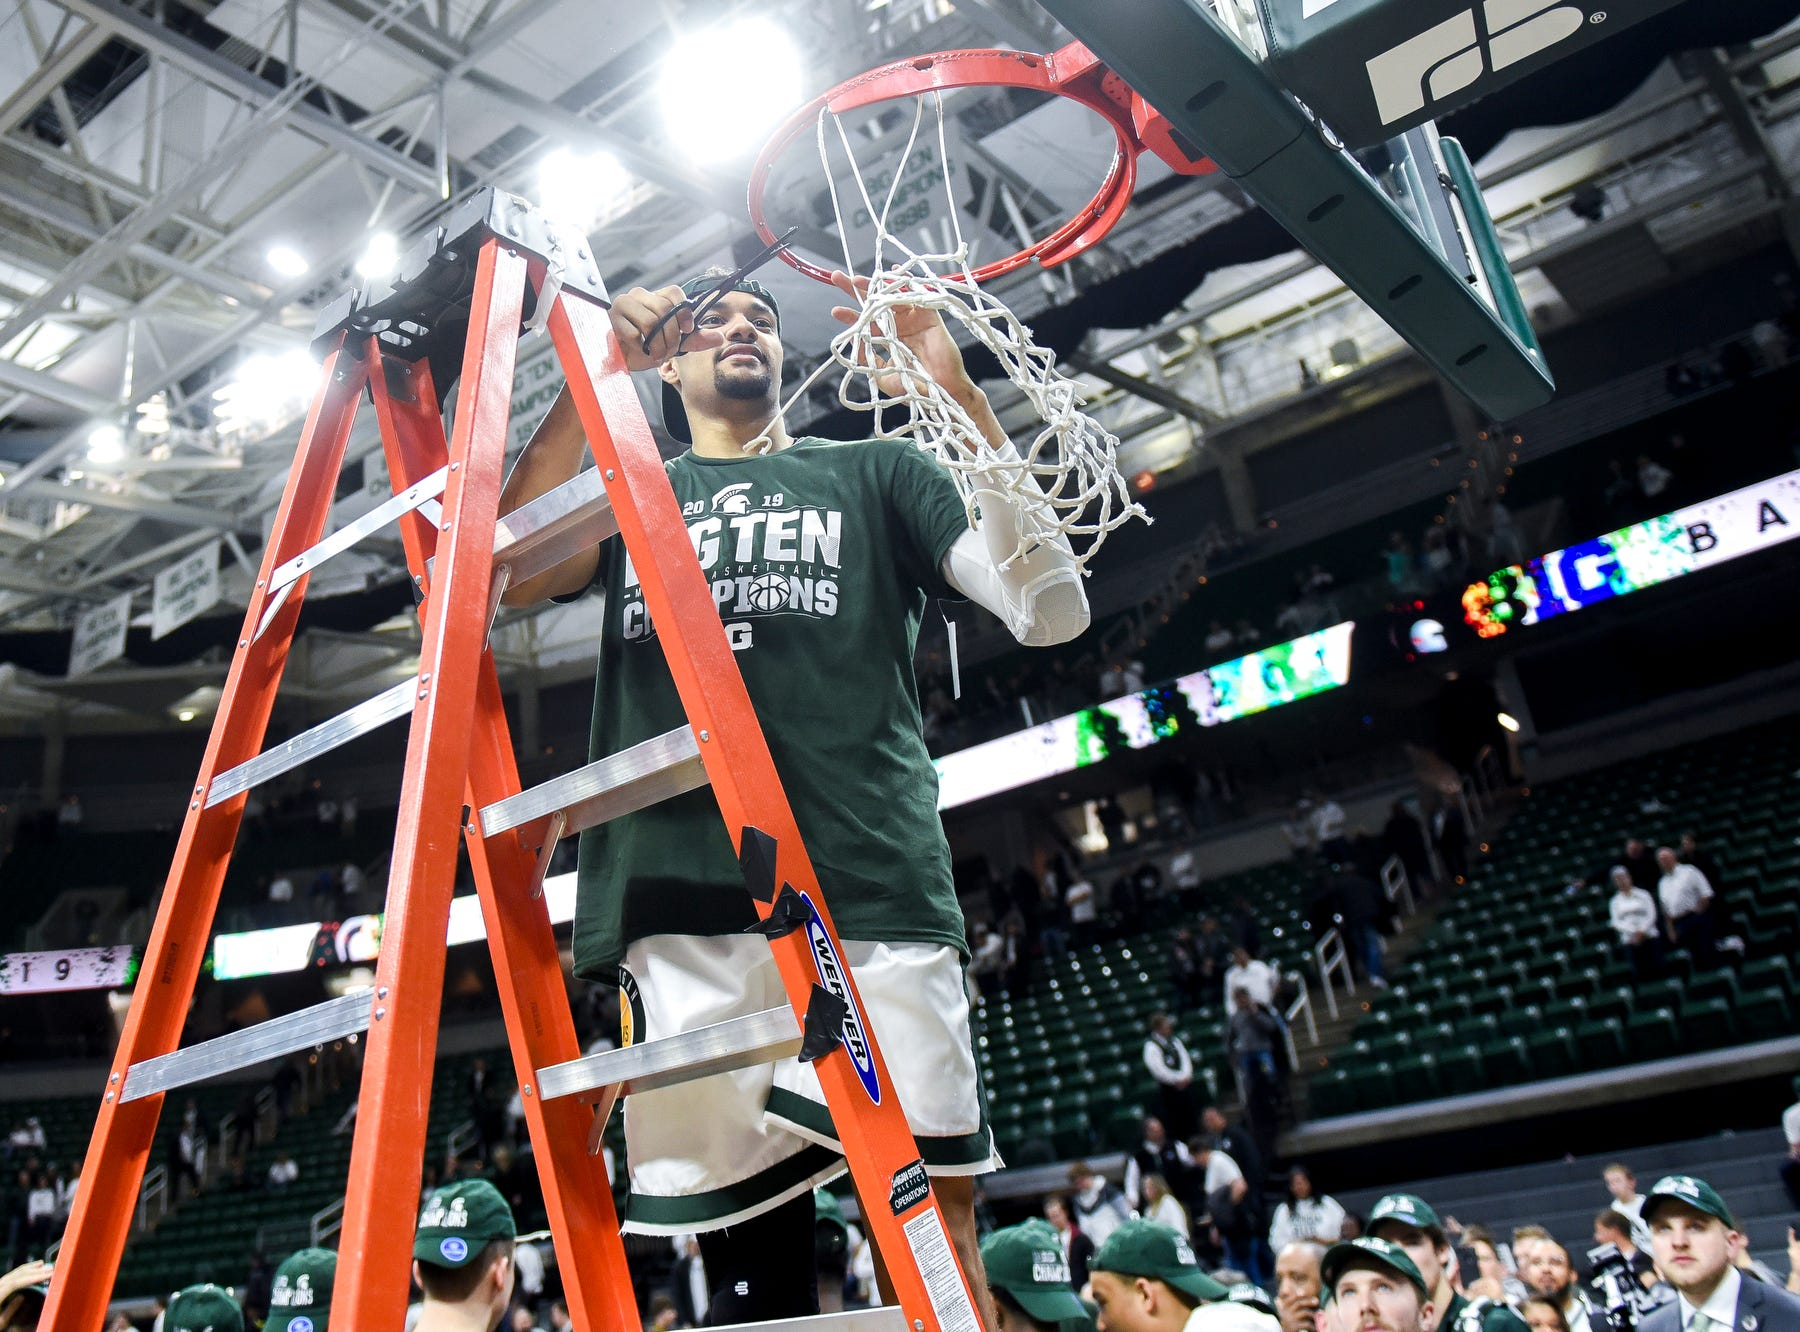 Michigan State's Kenny Goins cuts down the net after the Spartans beat Michigan 75-63 winning the Big Ten title on Saturday, March 9, 2019, at the Breslin Center in East Lansing.